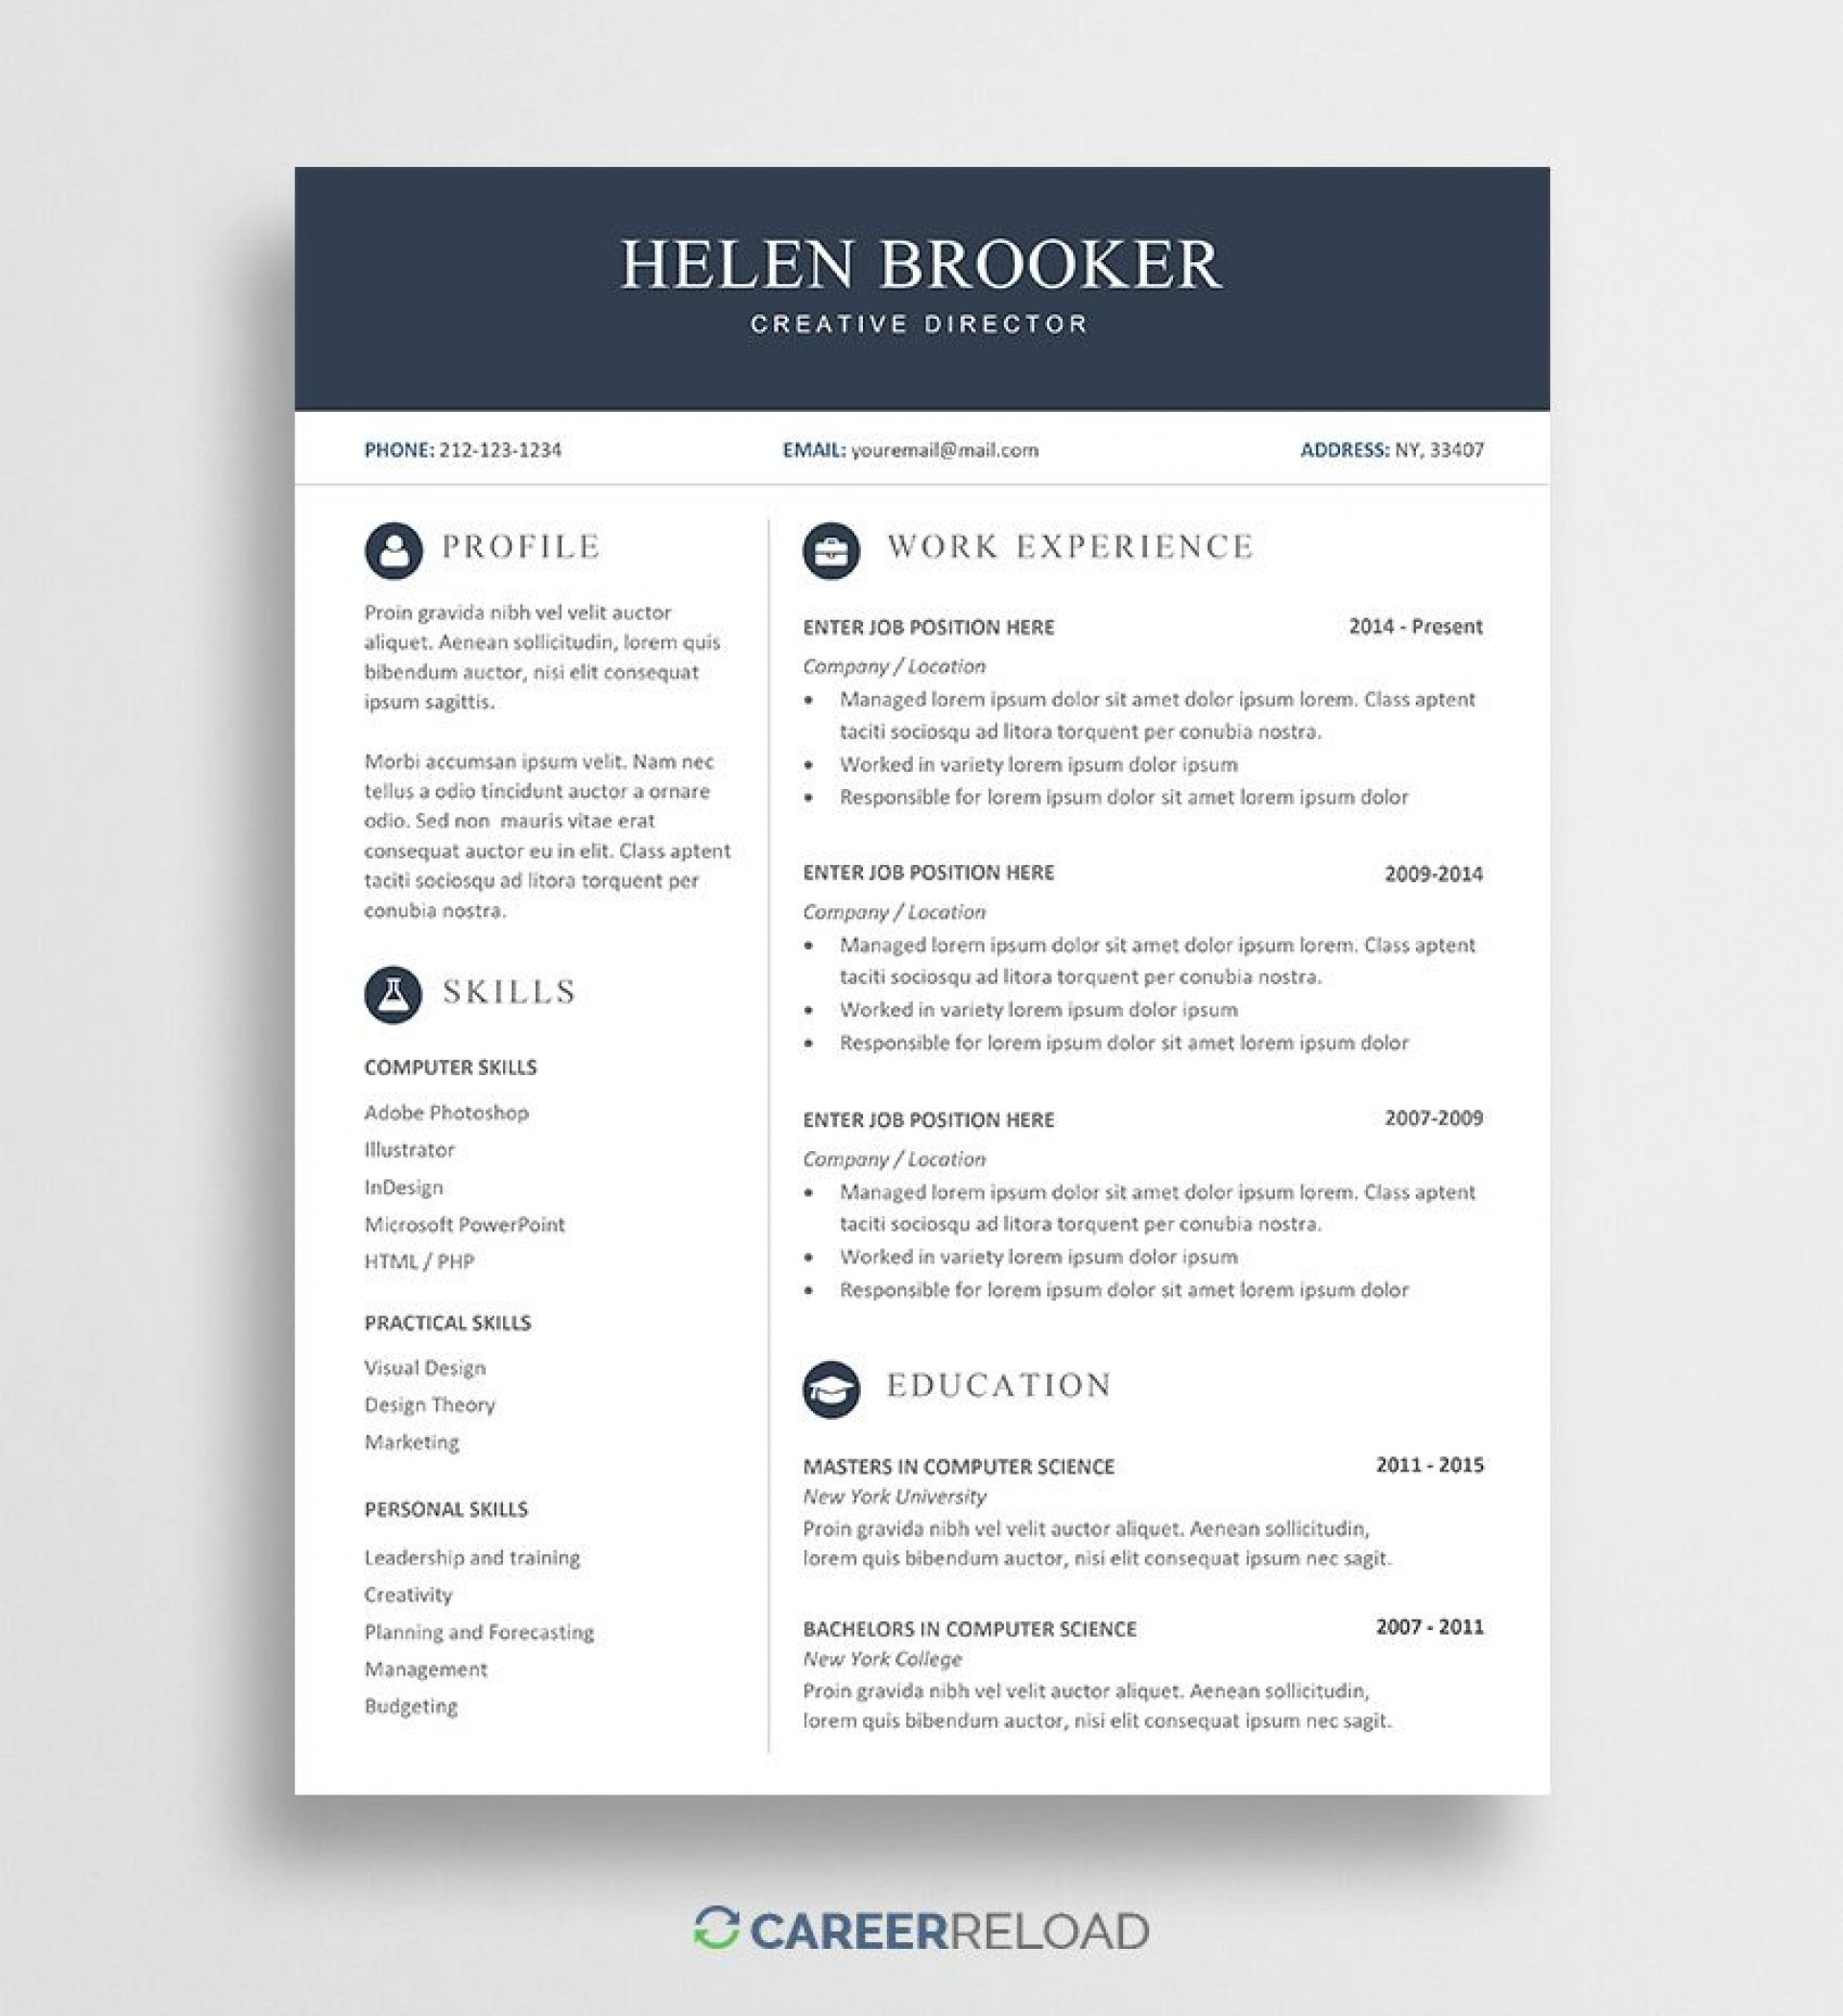 002 Impressive Word Template For Resume Idea  Resumes M Free Best Document Download1920